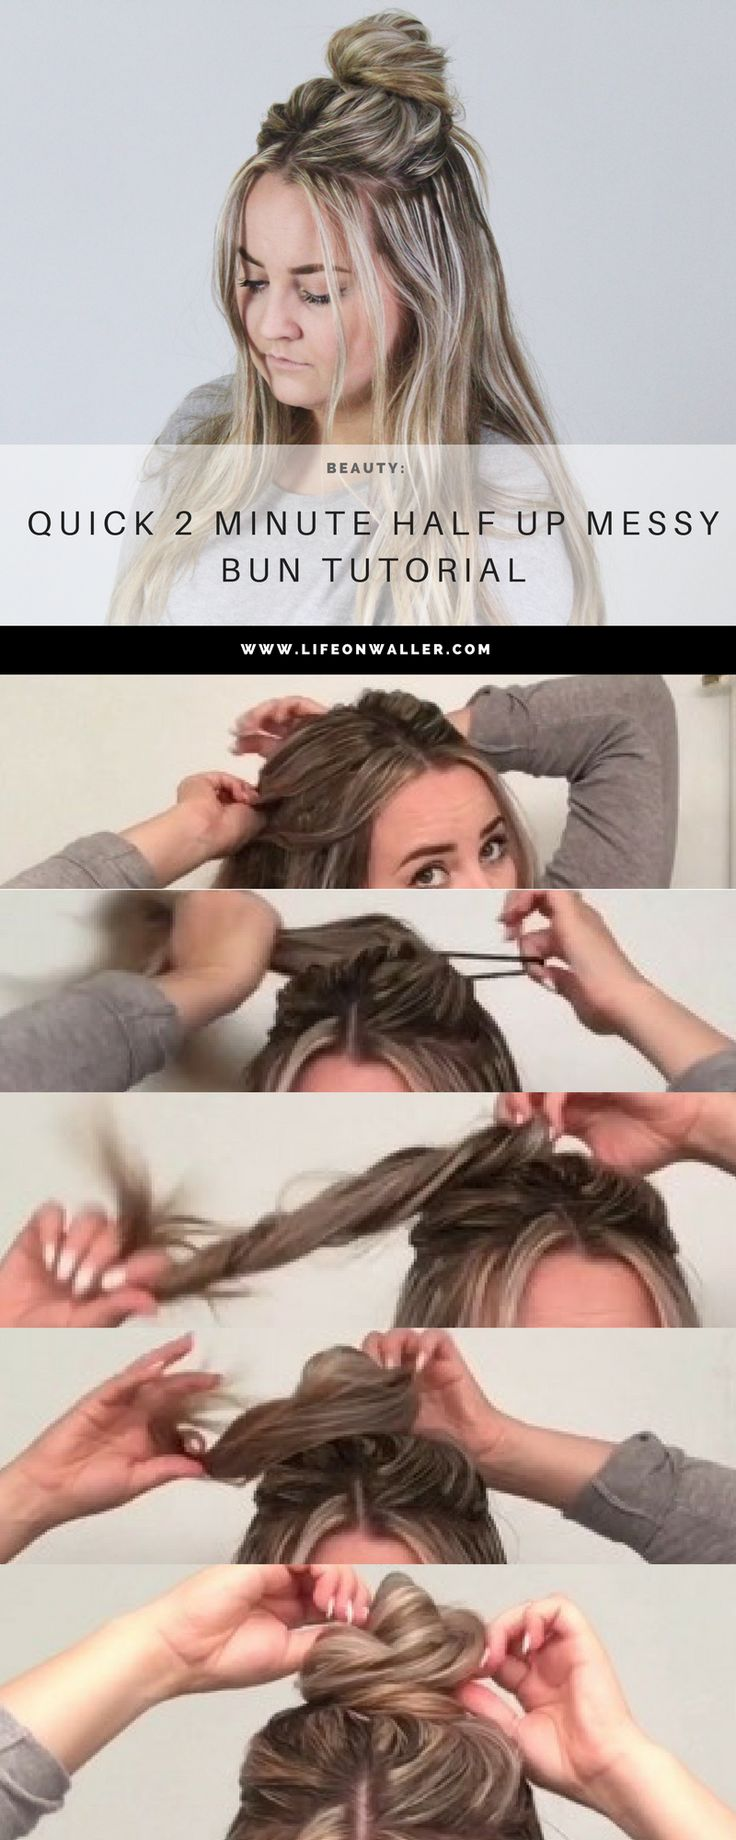 This is a super stylish and trendy half up hairstyle that is quick and easy to do! All you need is 2 minutes for this half up messy bun! Messy bun, easy up do, trendy hairstyle, long hair, short hair,…